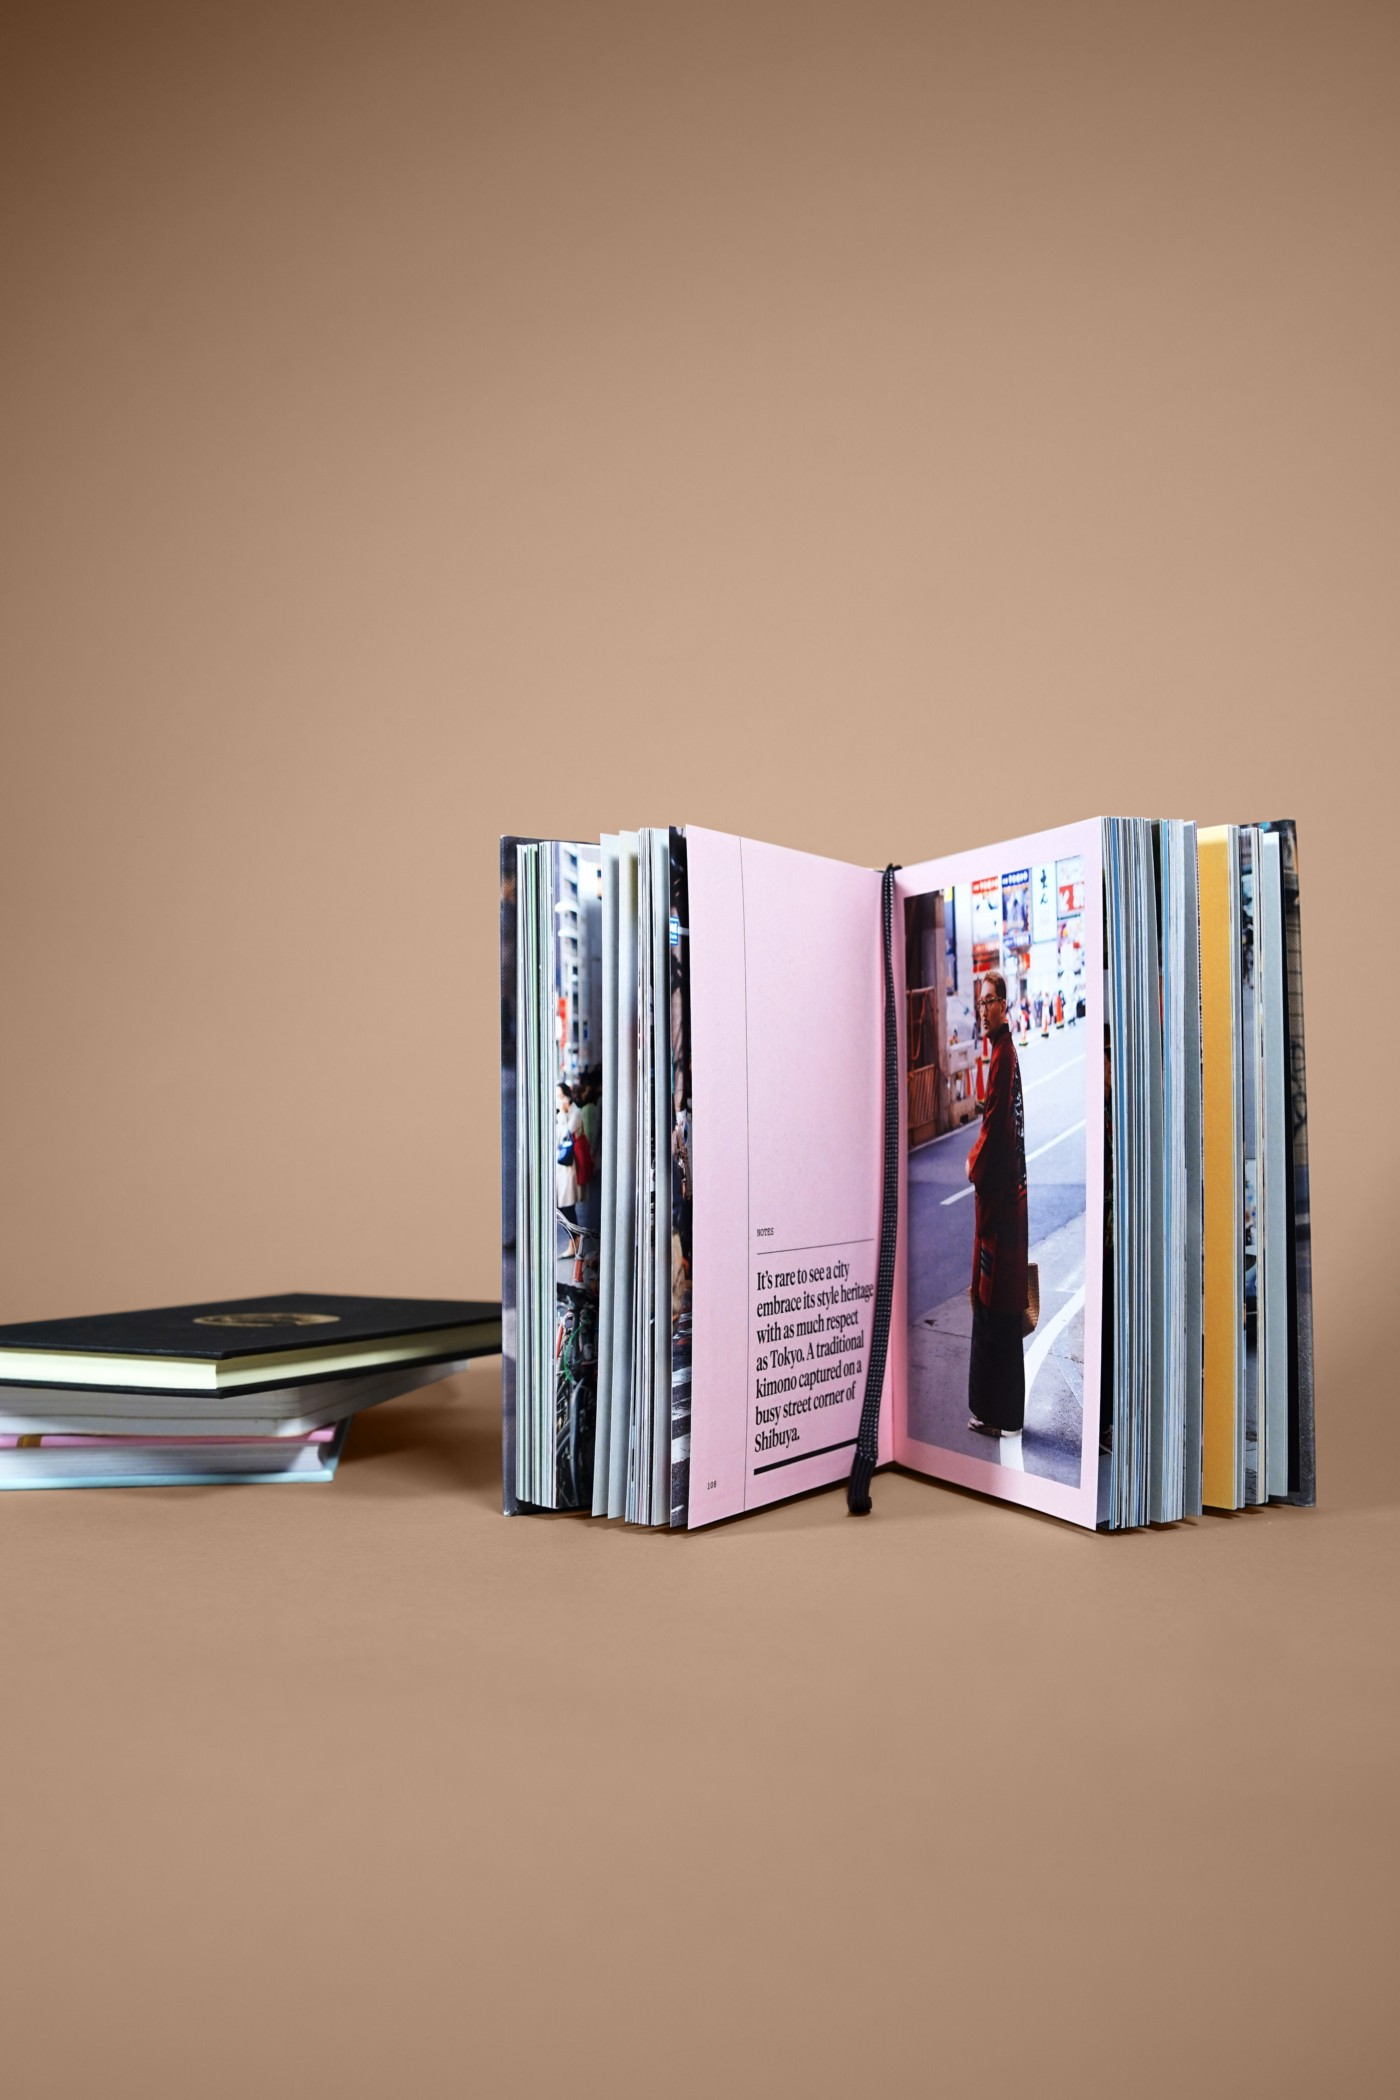 A book that could be bound or created from separate pdf documents